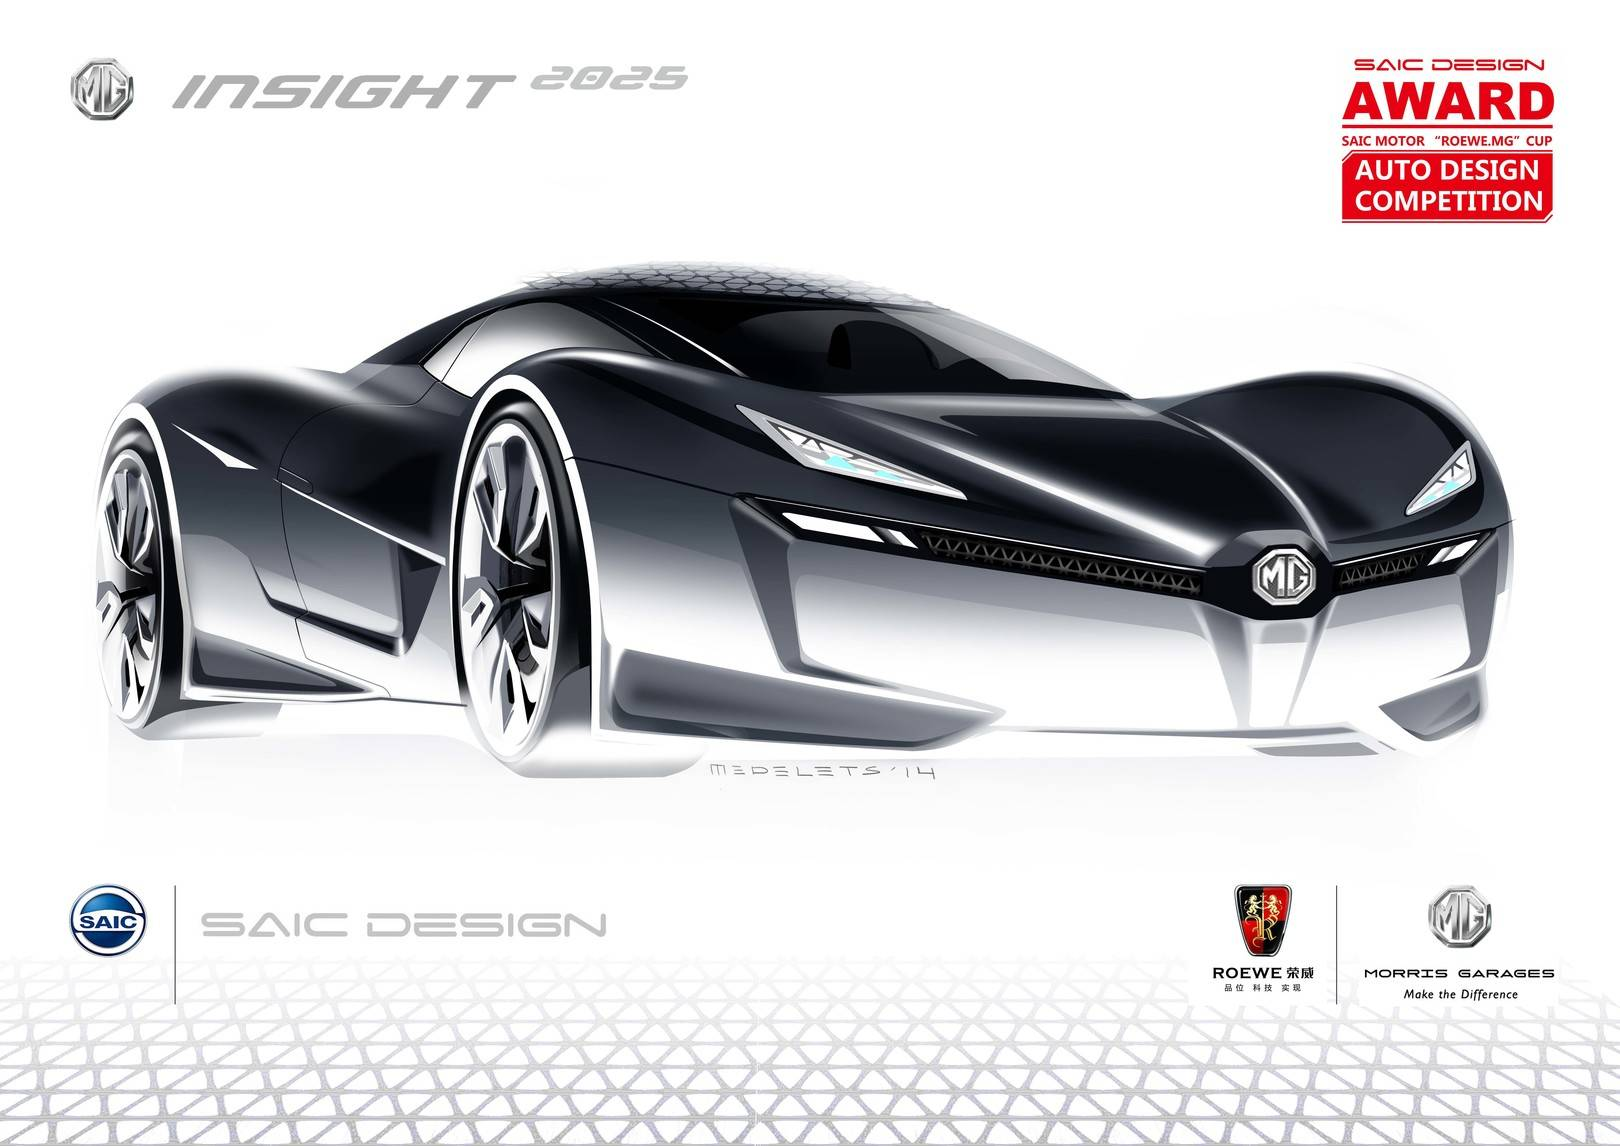 SAIC DESSIGN AWARD AUTO DESIGN COMPETITION 2014